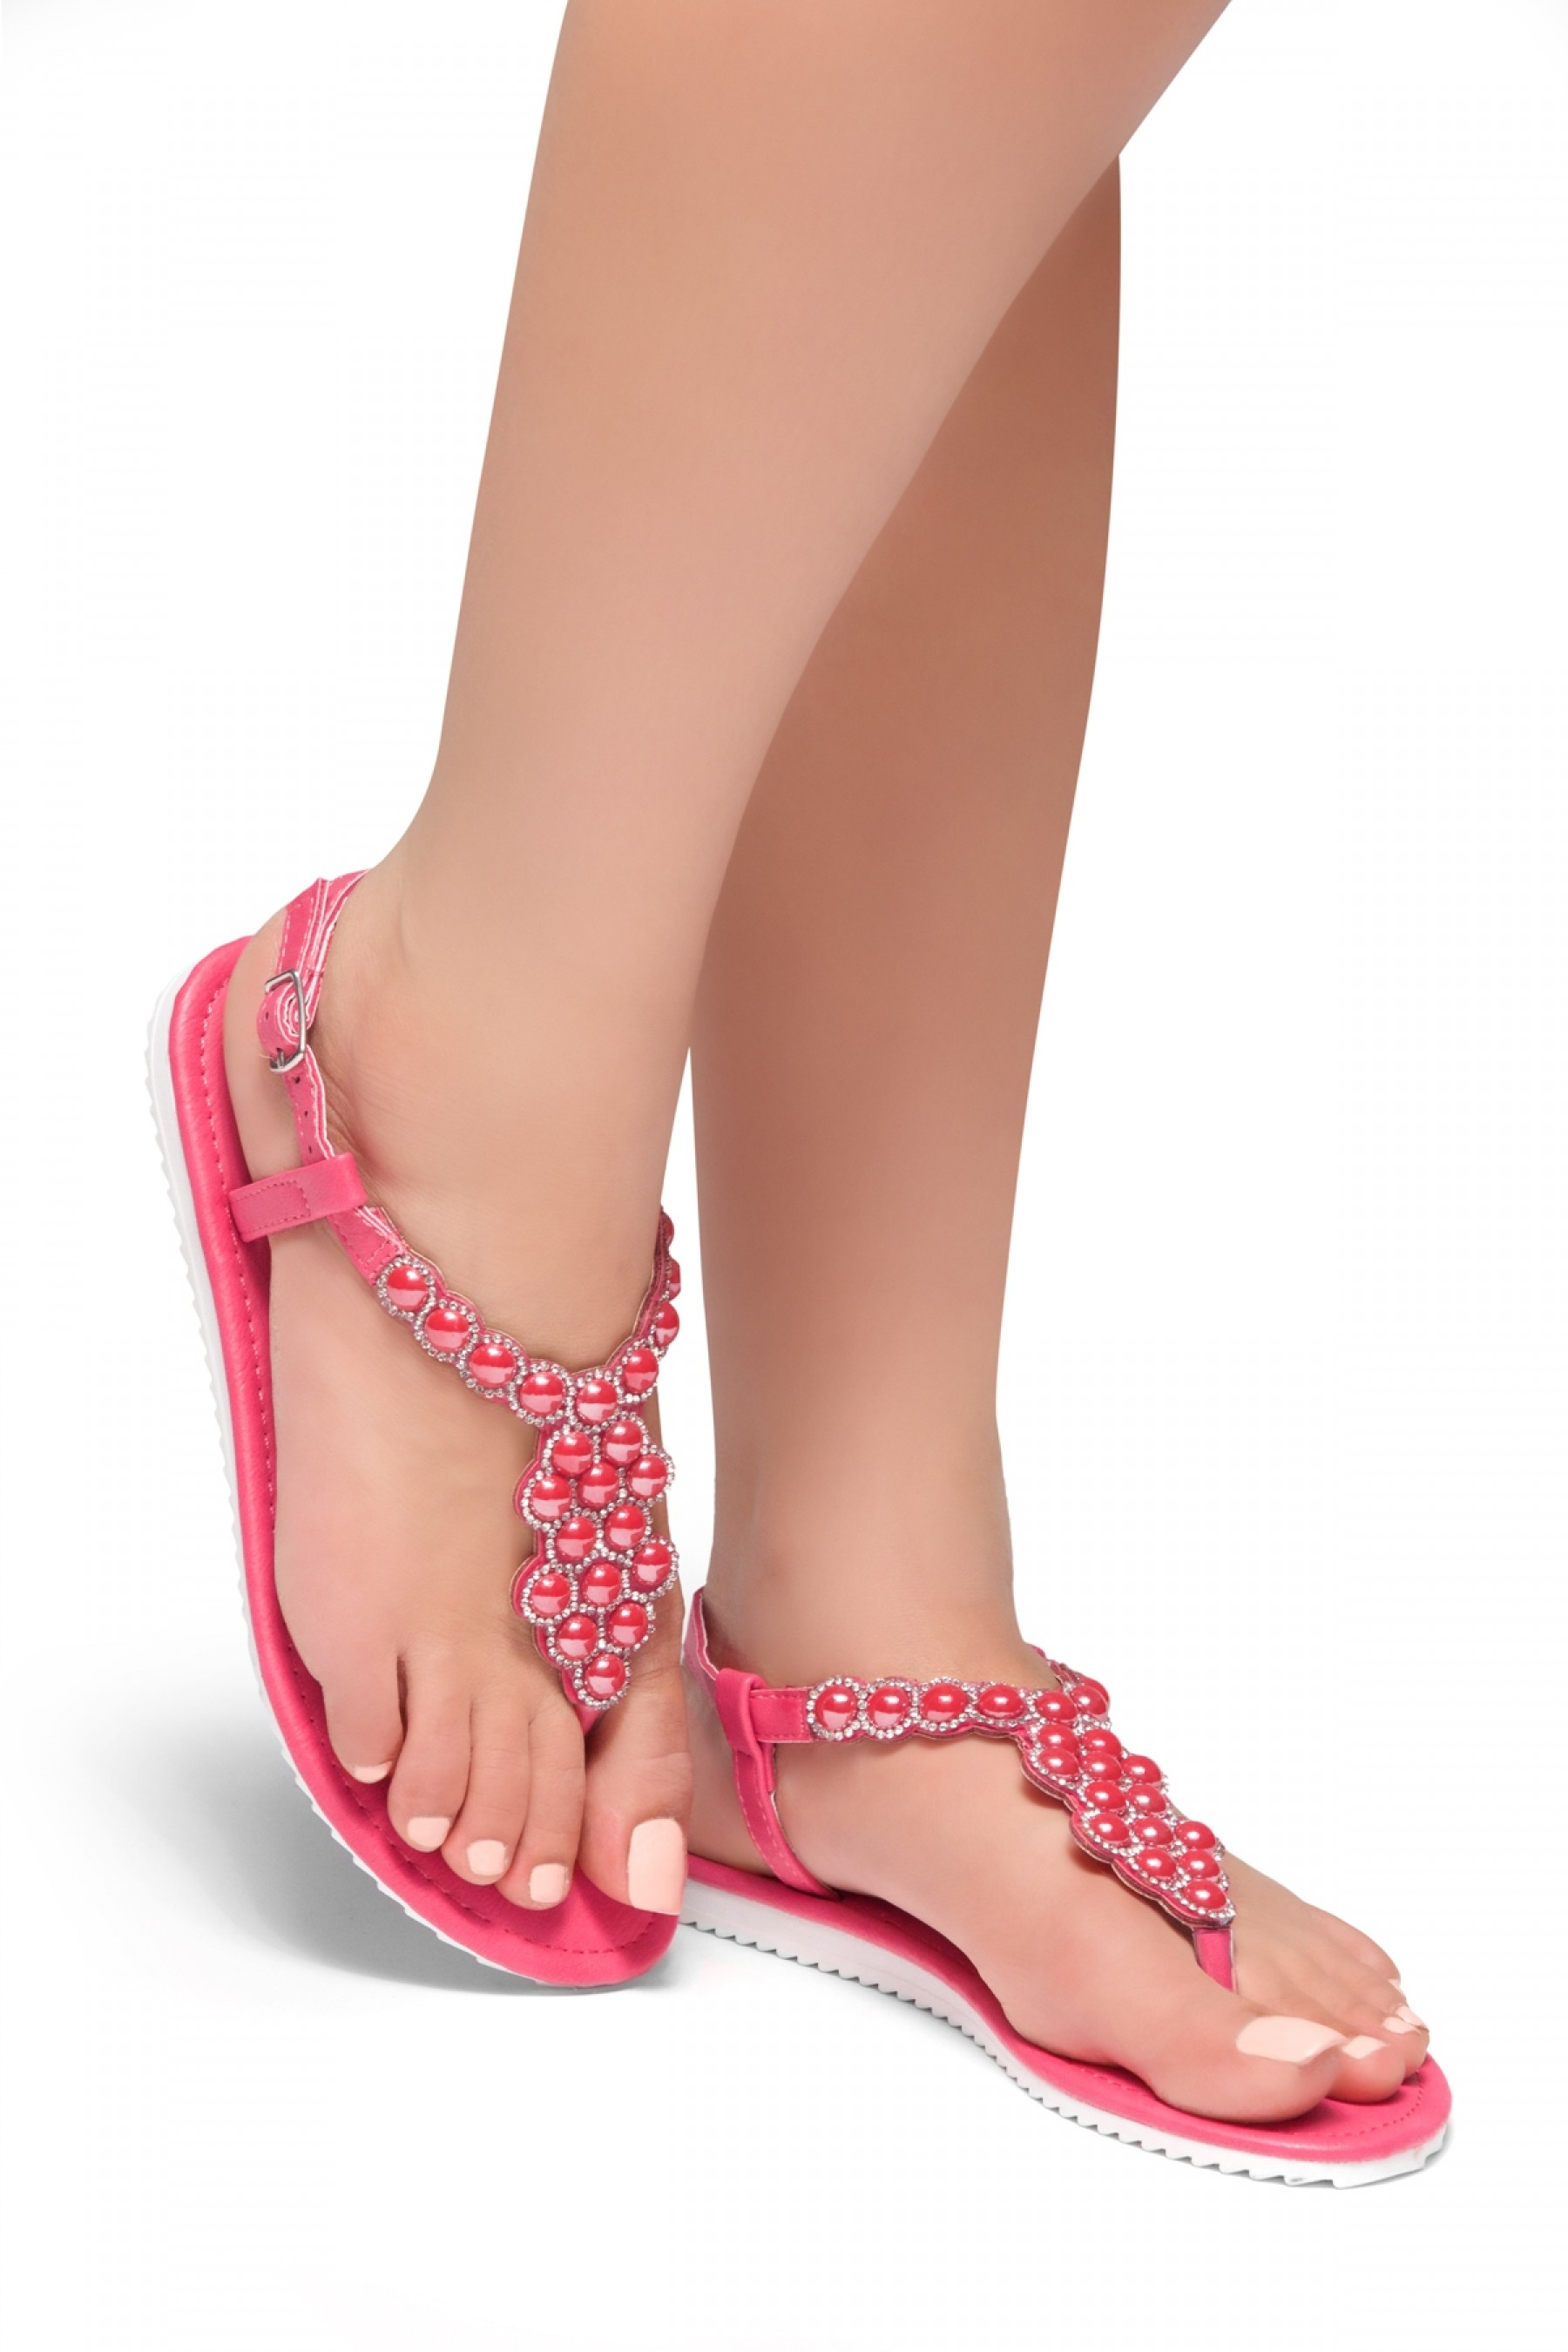 a48efad45 HerStyle Summer Grow- T-Strap Thong Sandals with Patterned Beads ...